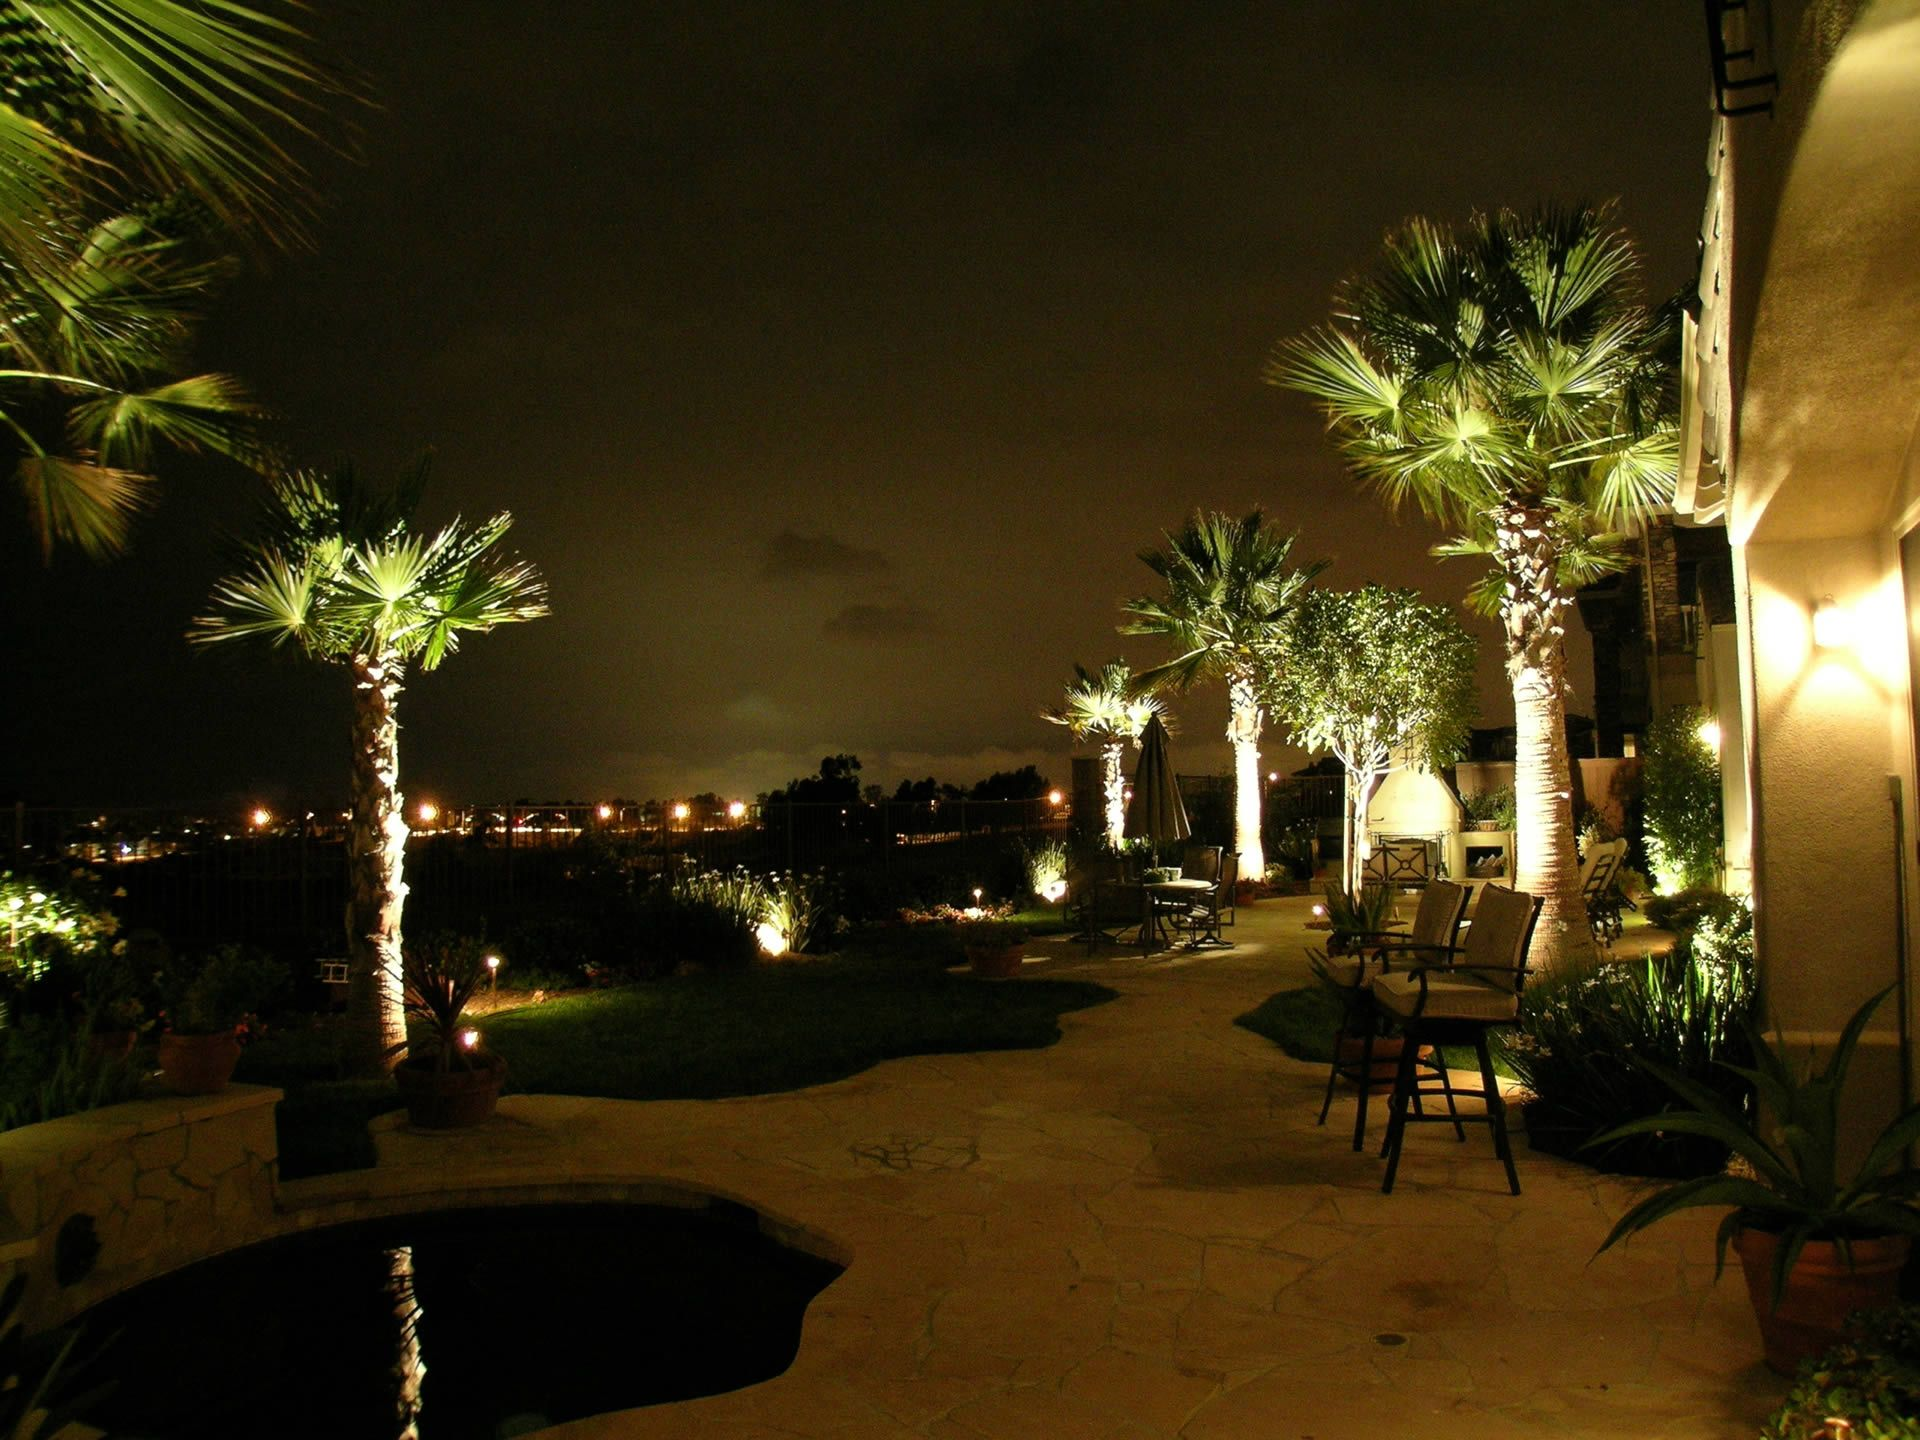 You Can Schedule Your Custom Landscape Lighting Design Project With Artistic Illuminations Online At Http Artisticillumination Form Scheduledesign Htm